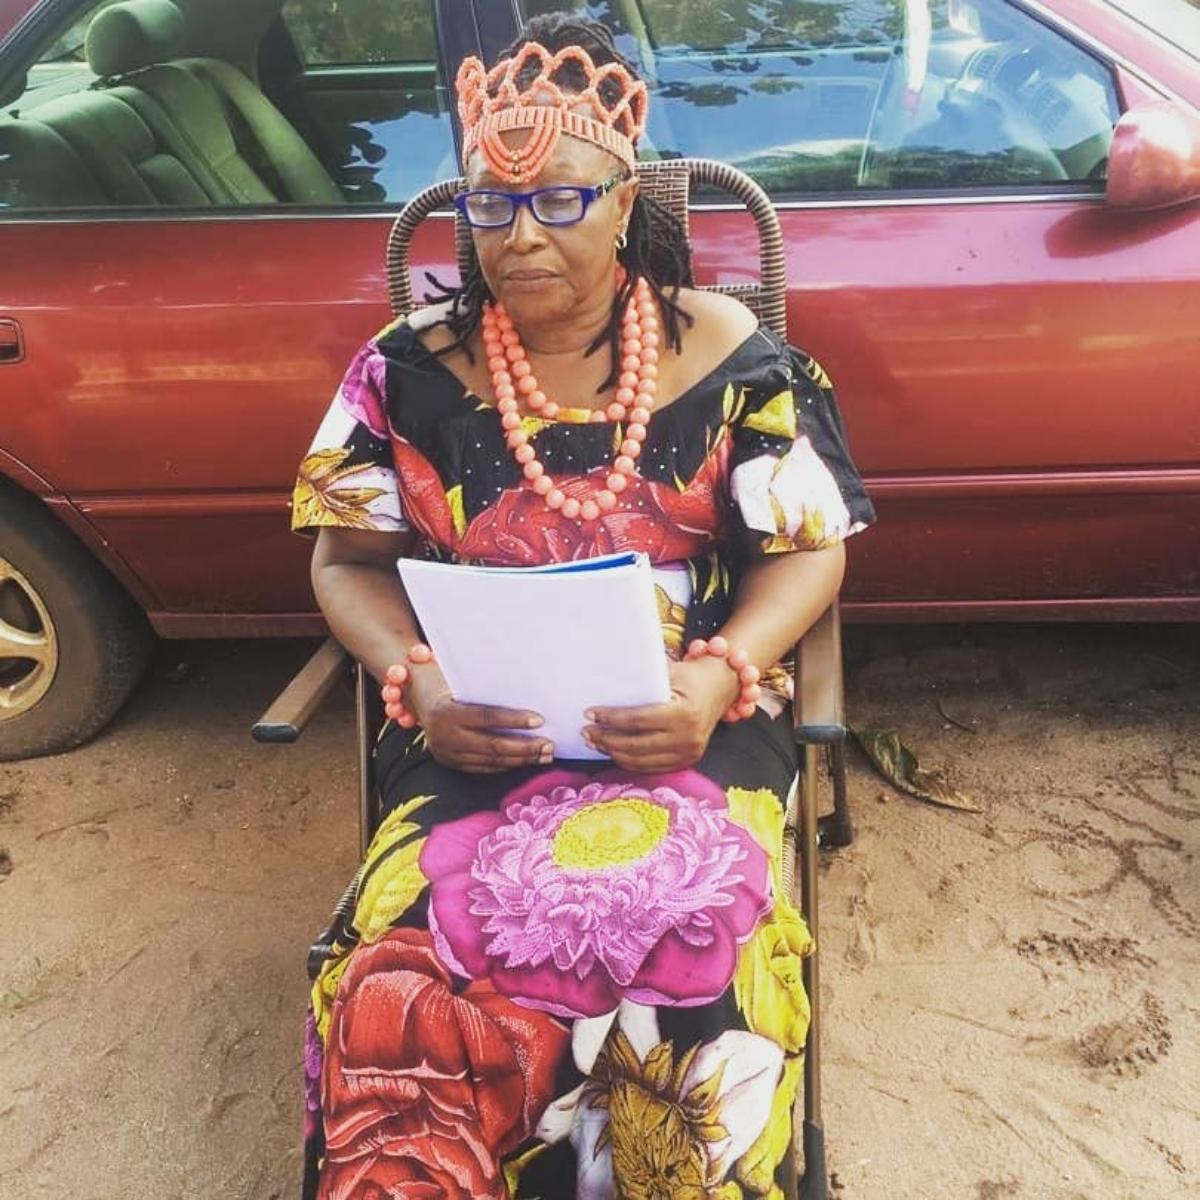 Why Patience Ozokwo Always Cast As Wicked Person In Movies